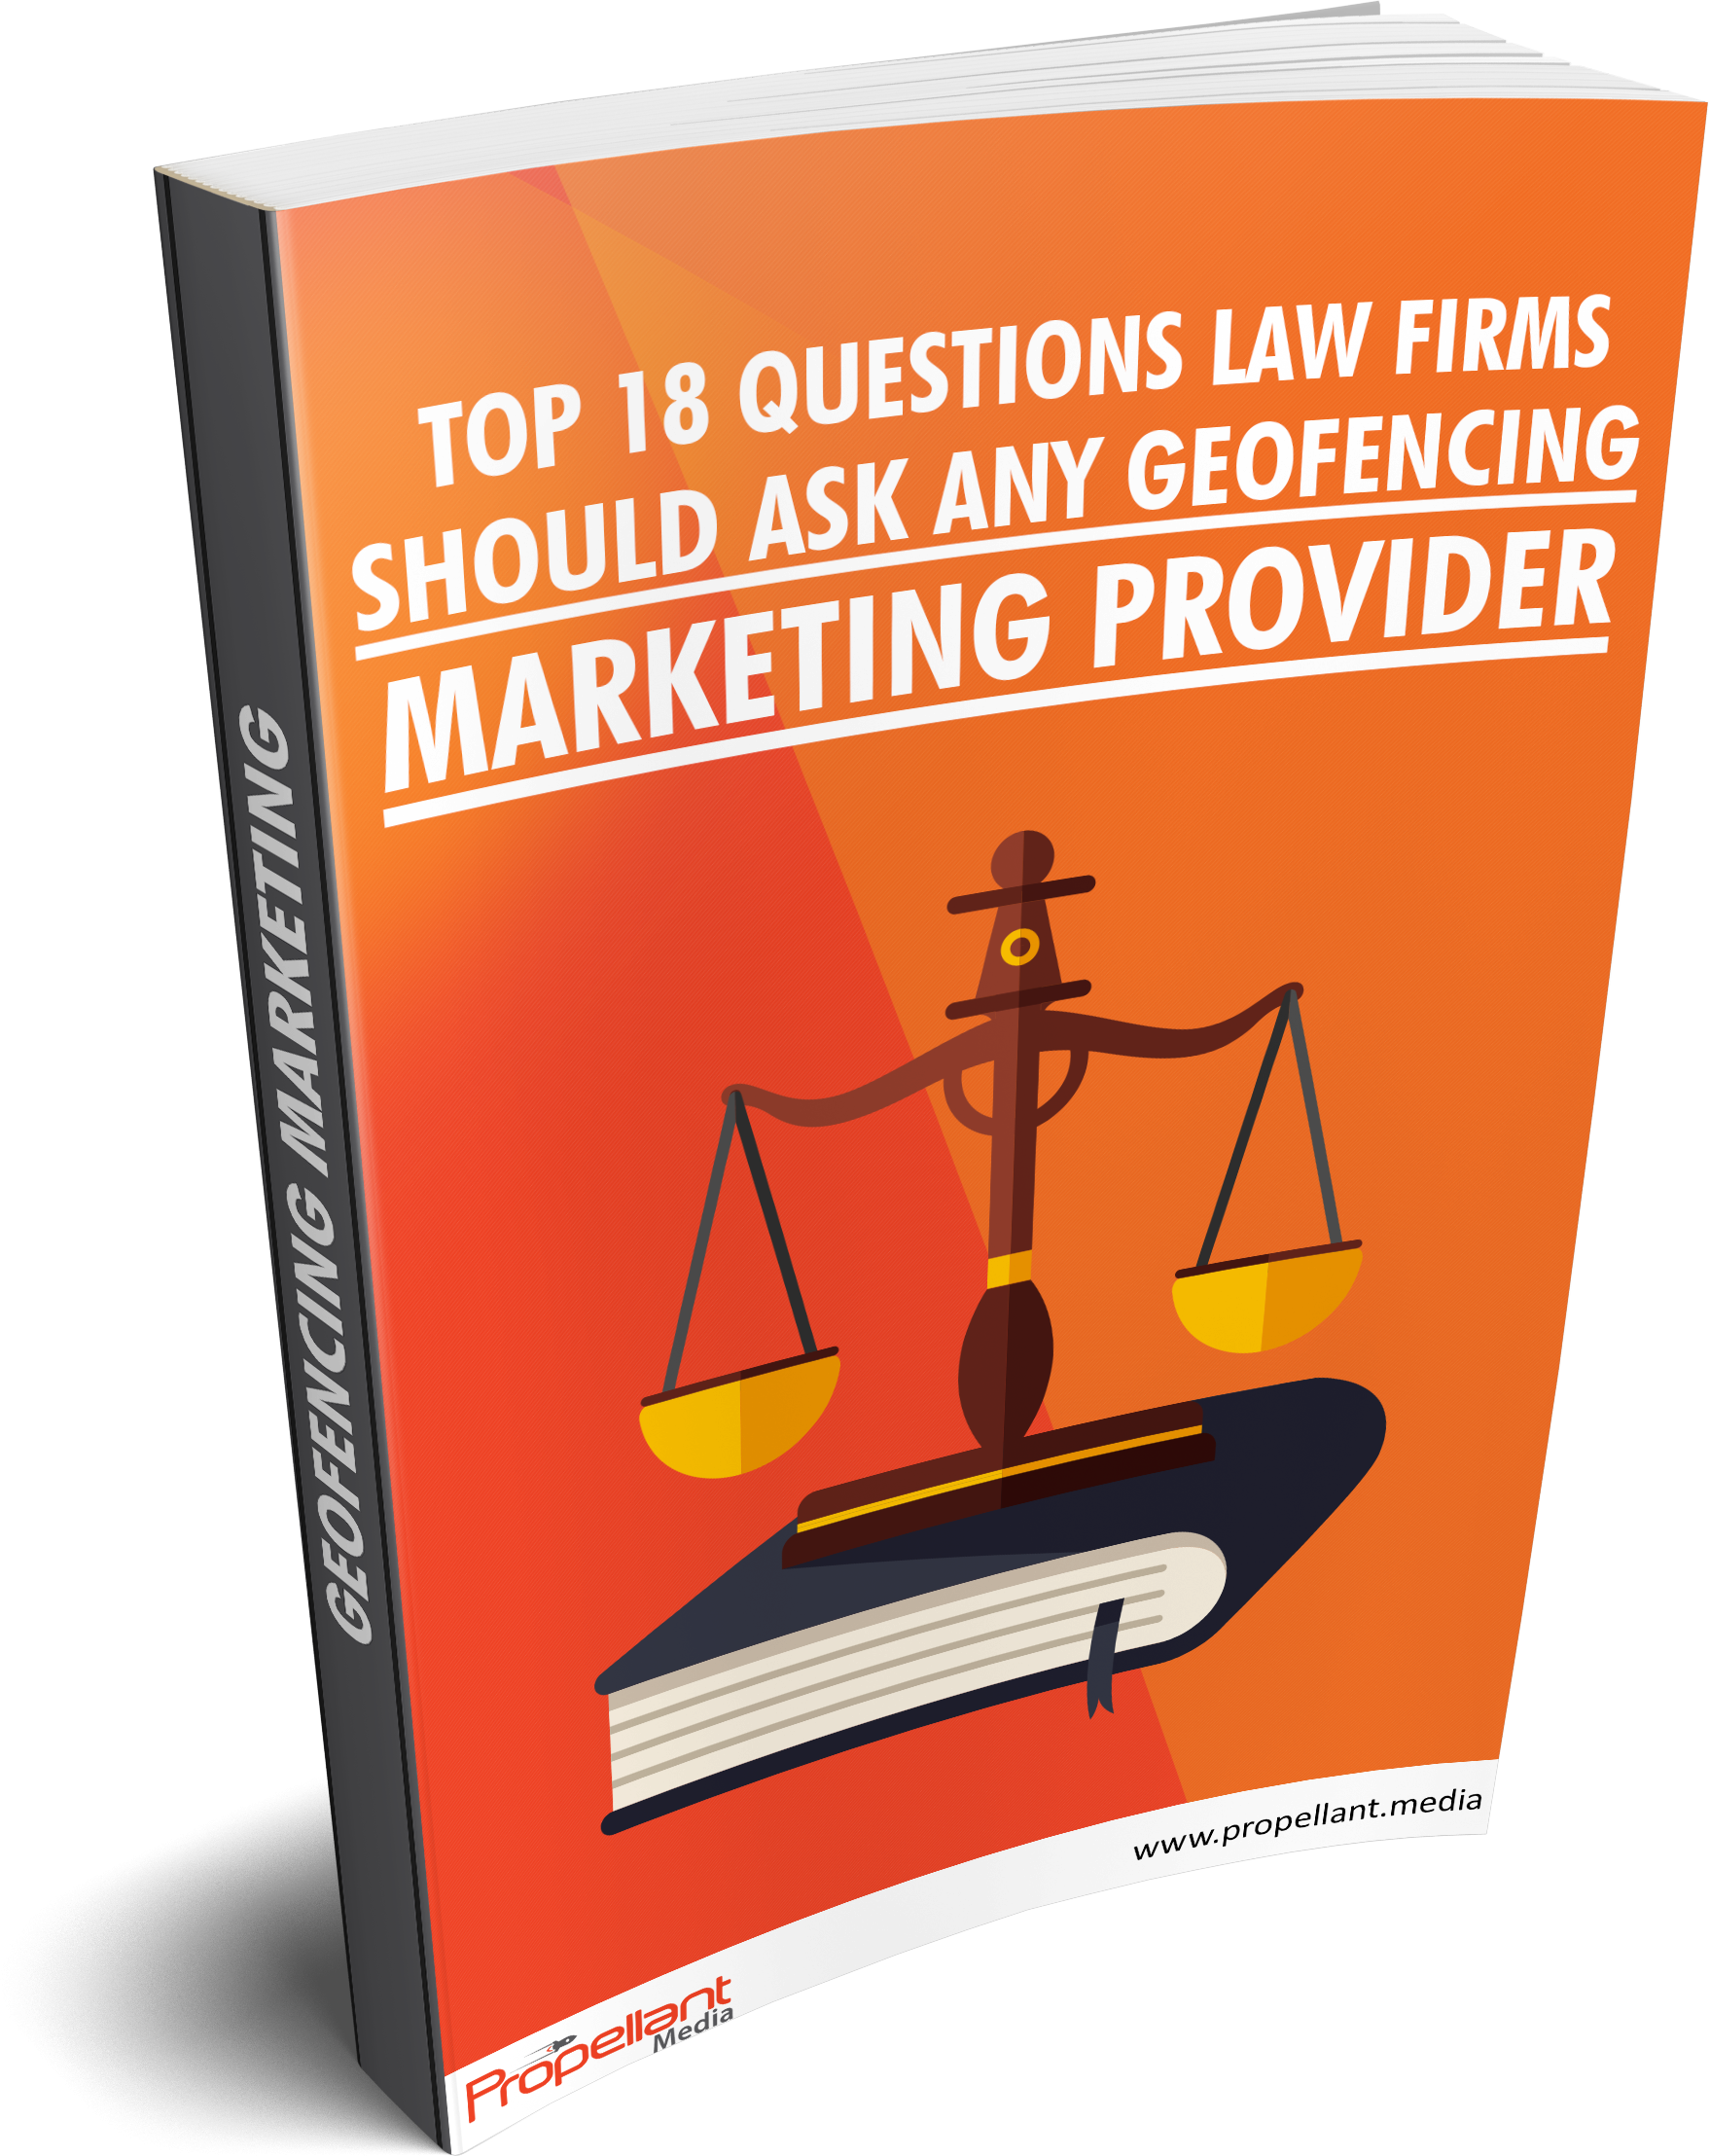 Top 18 Questions Law Firms Should Ask Geofencing Marketing Providers [Download Guide]